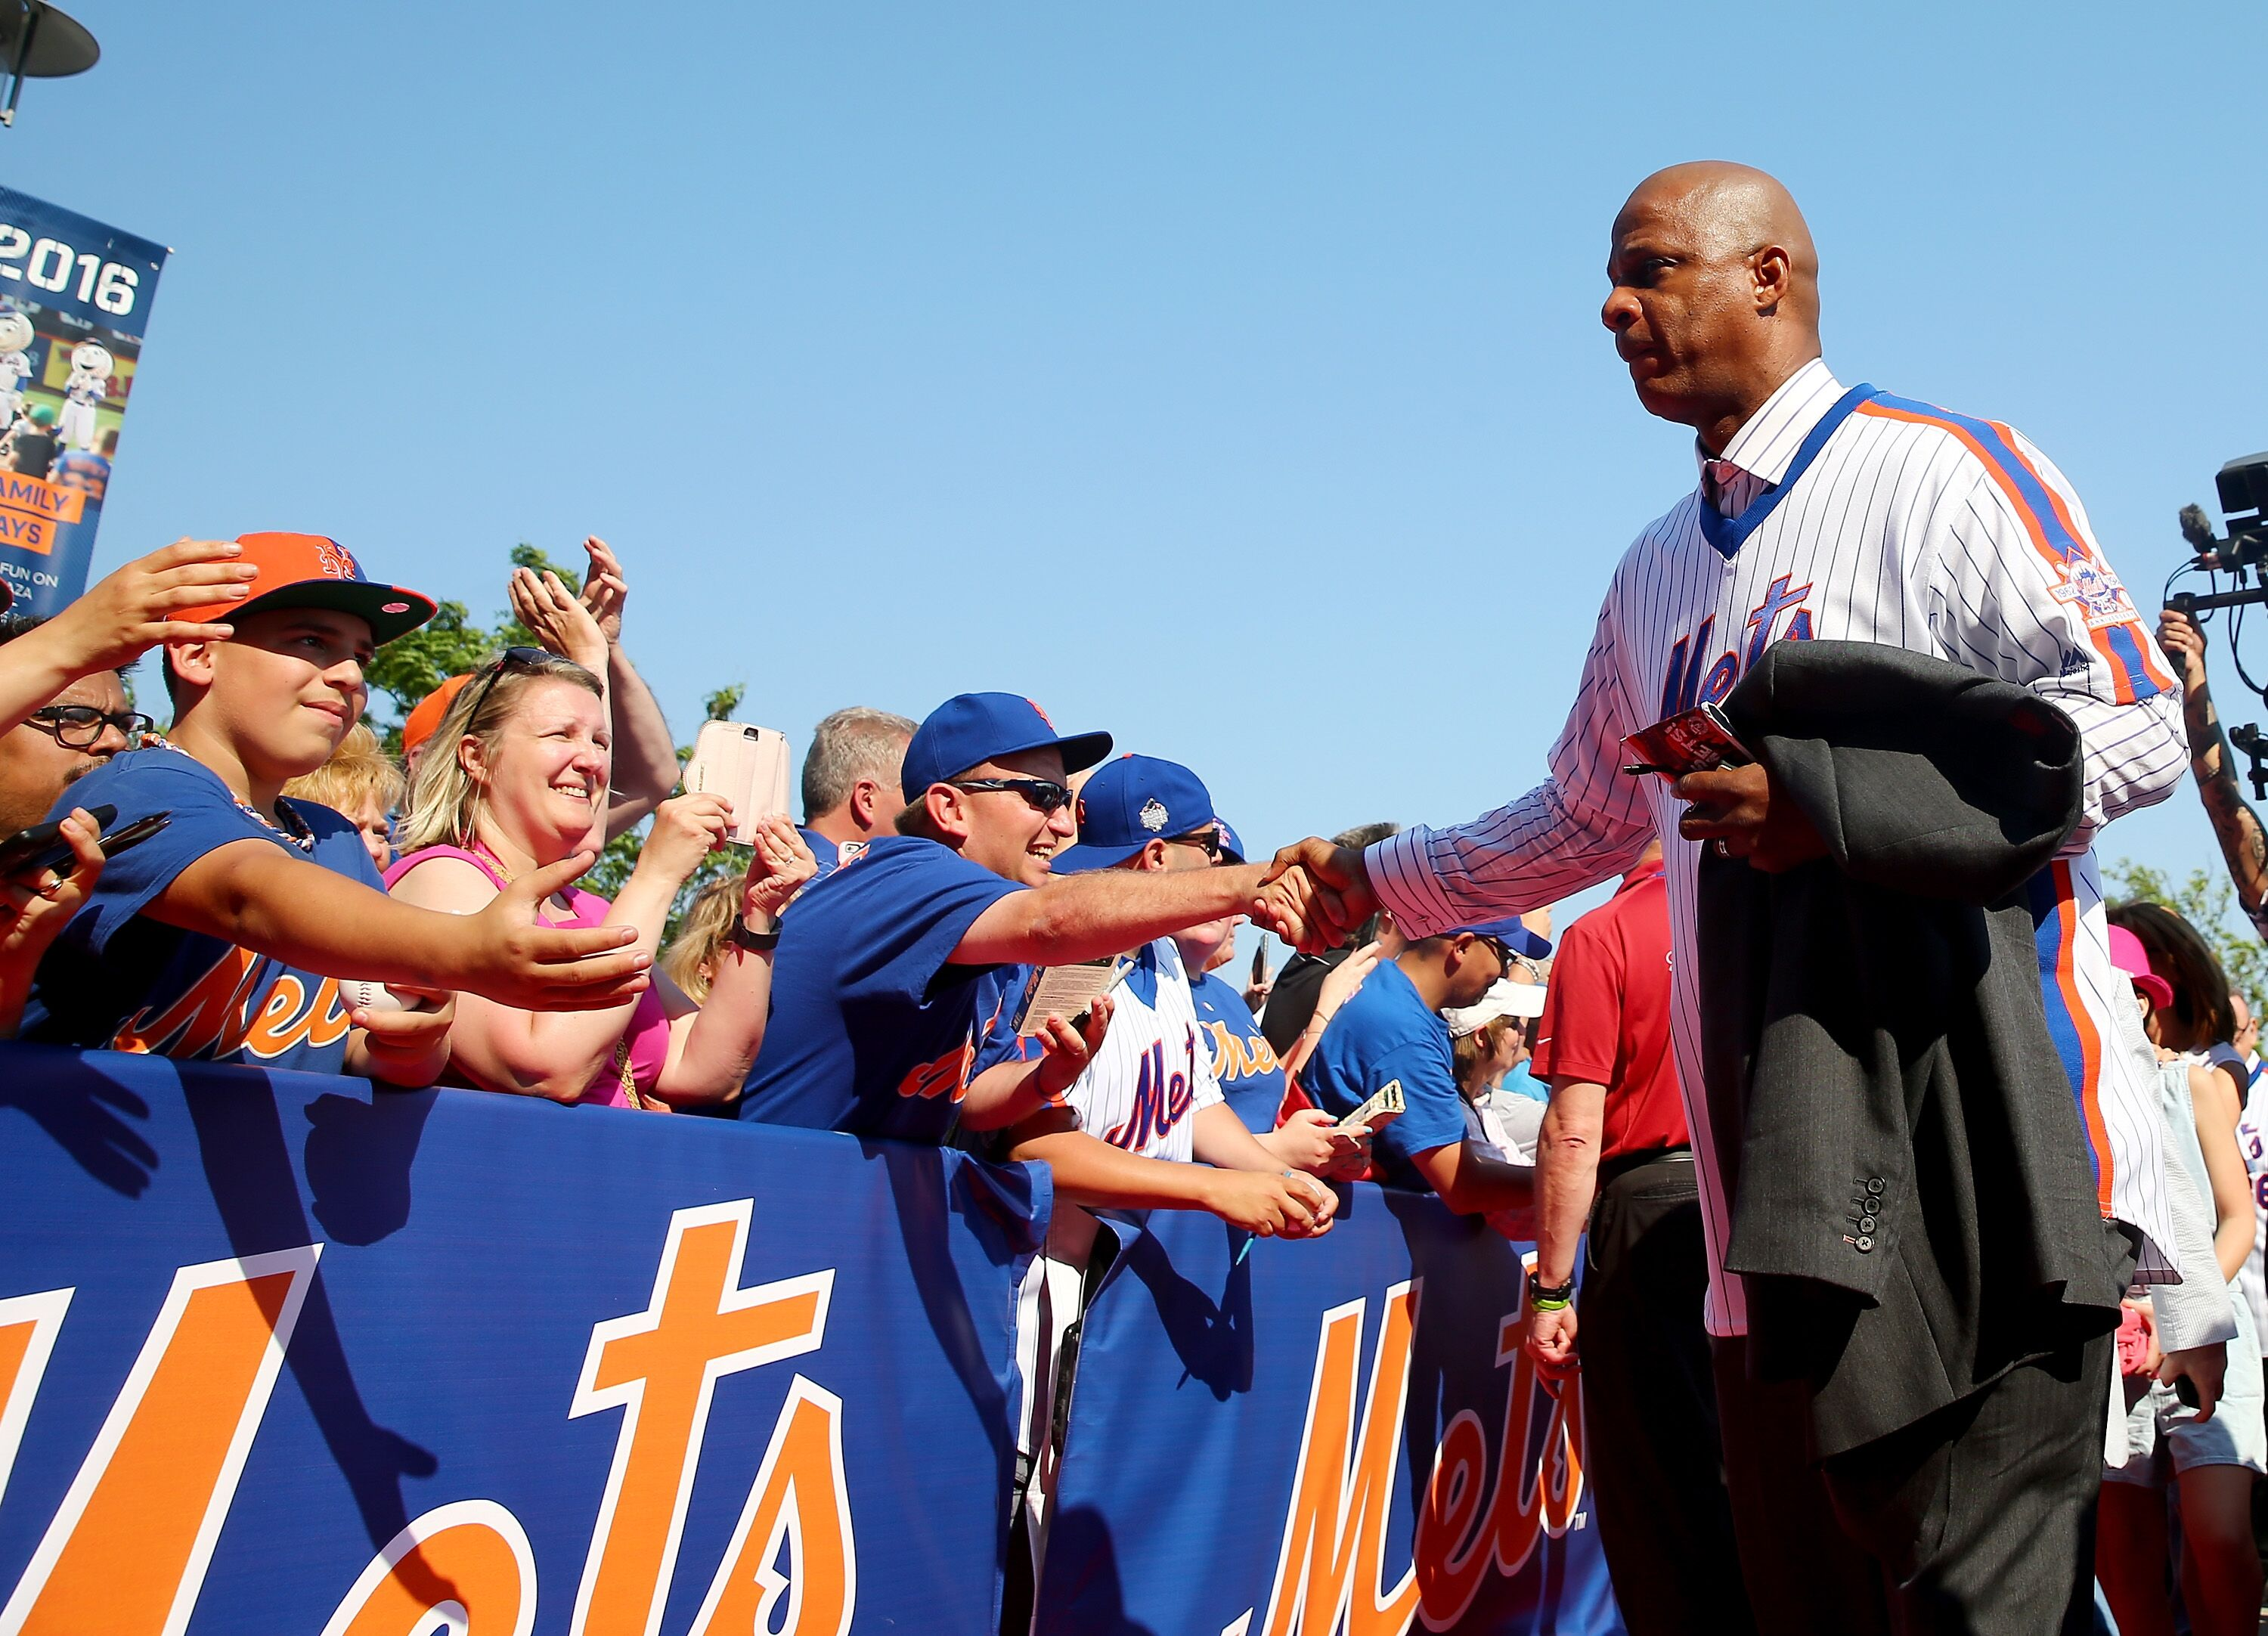 New York Mets: Darryl Strawberry declares end to relationship with team